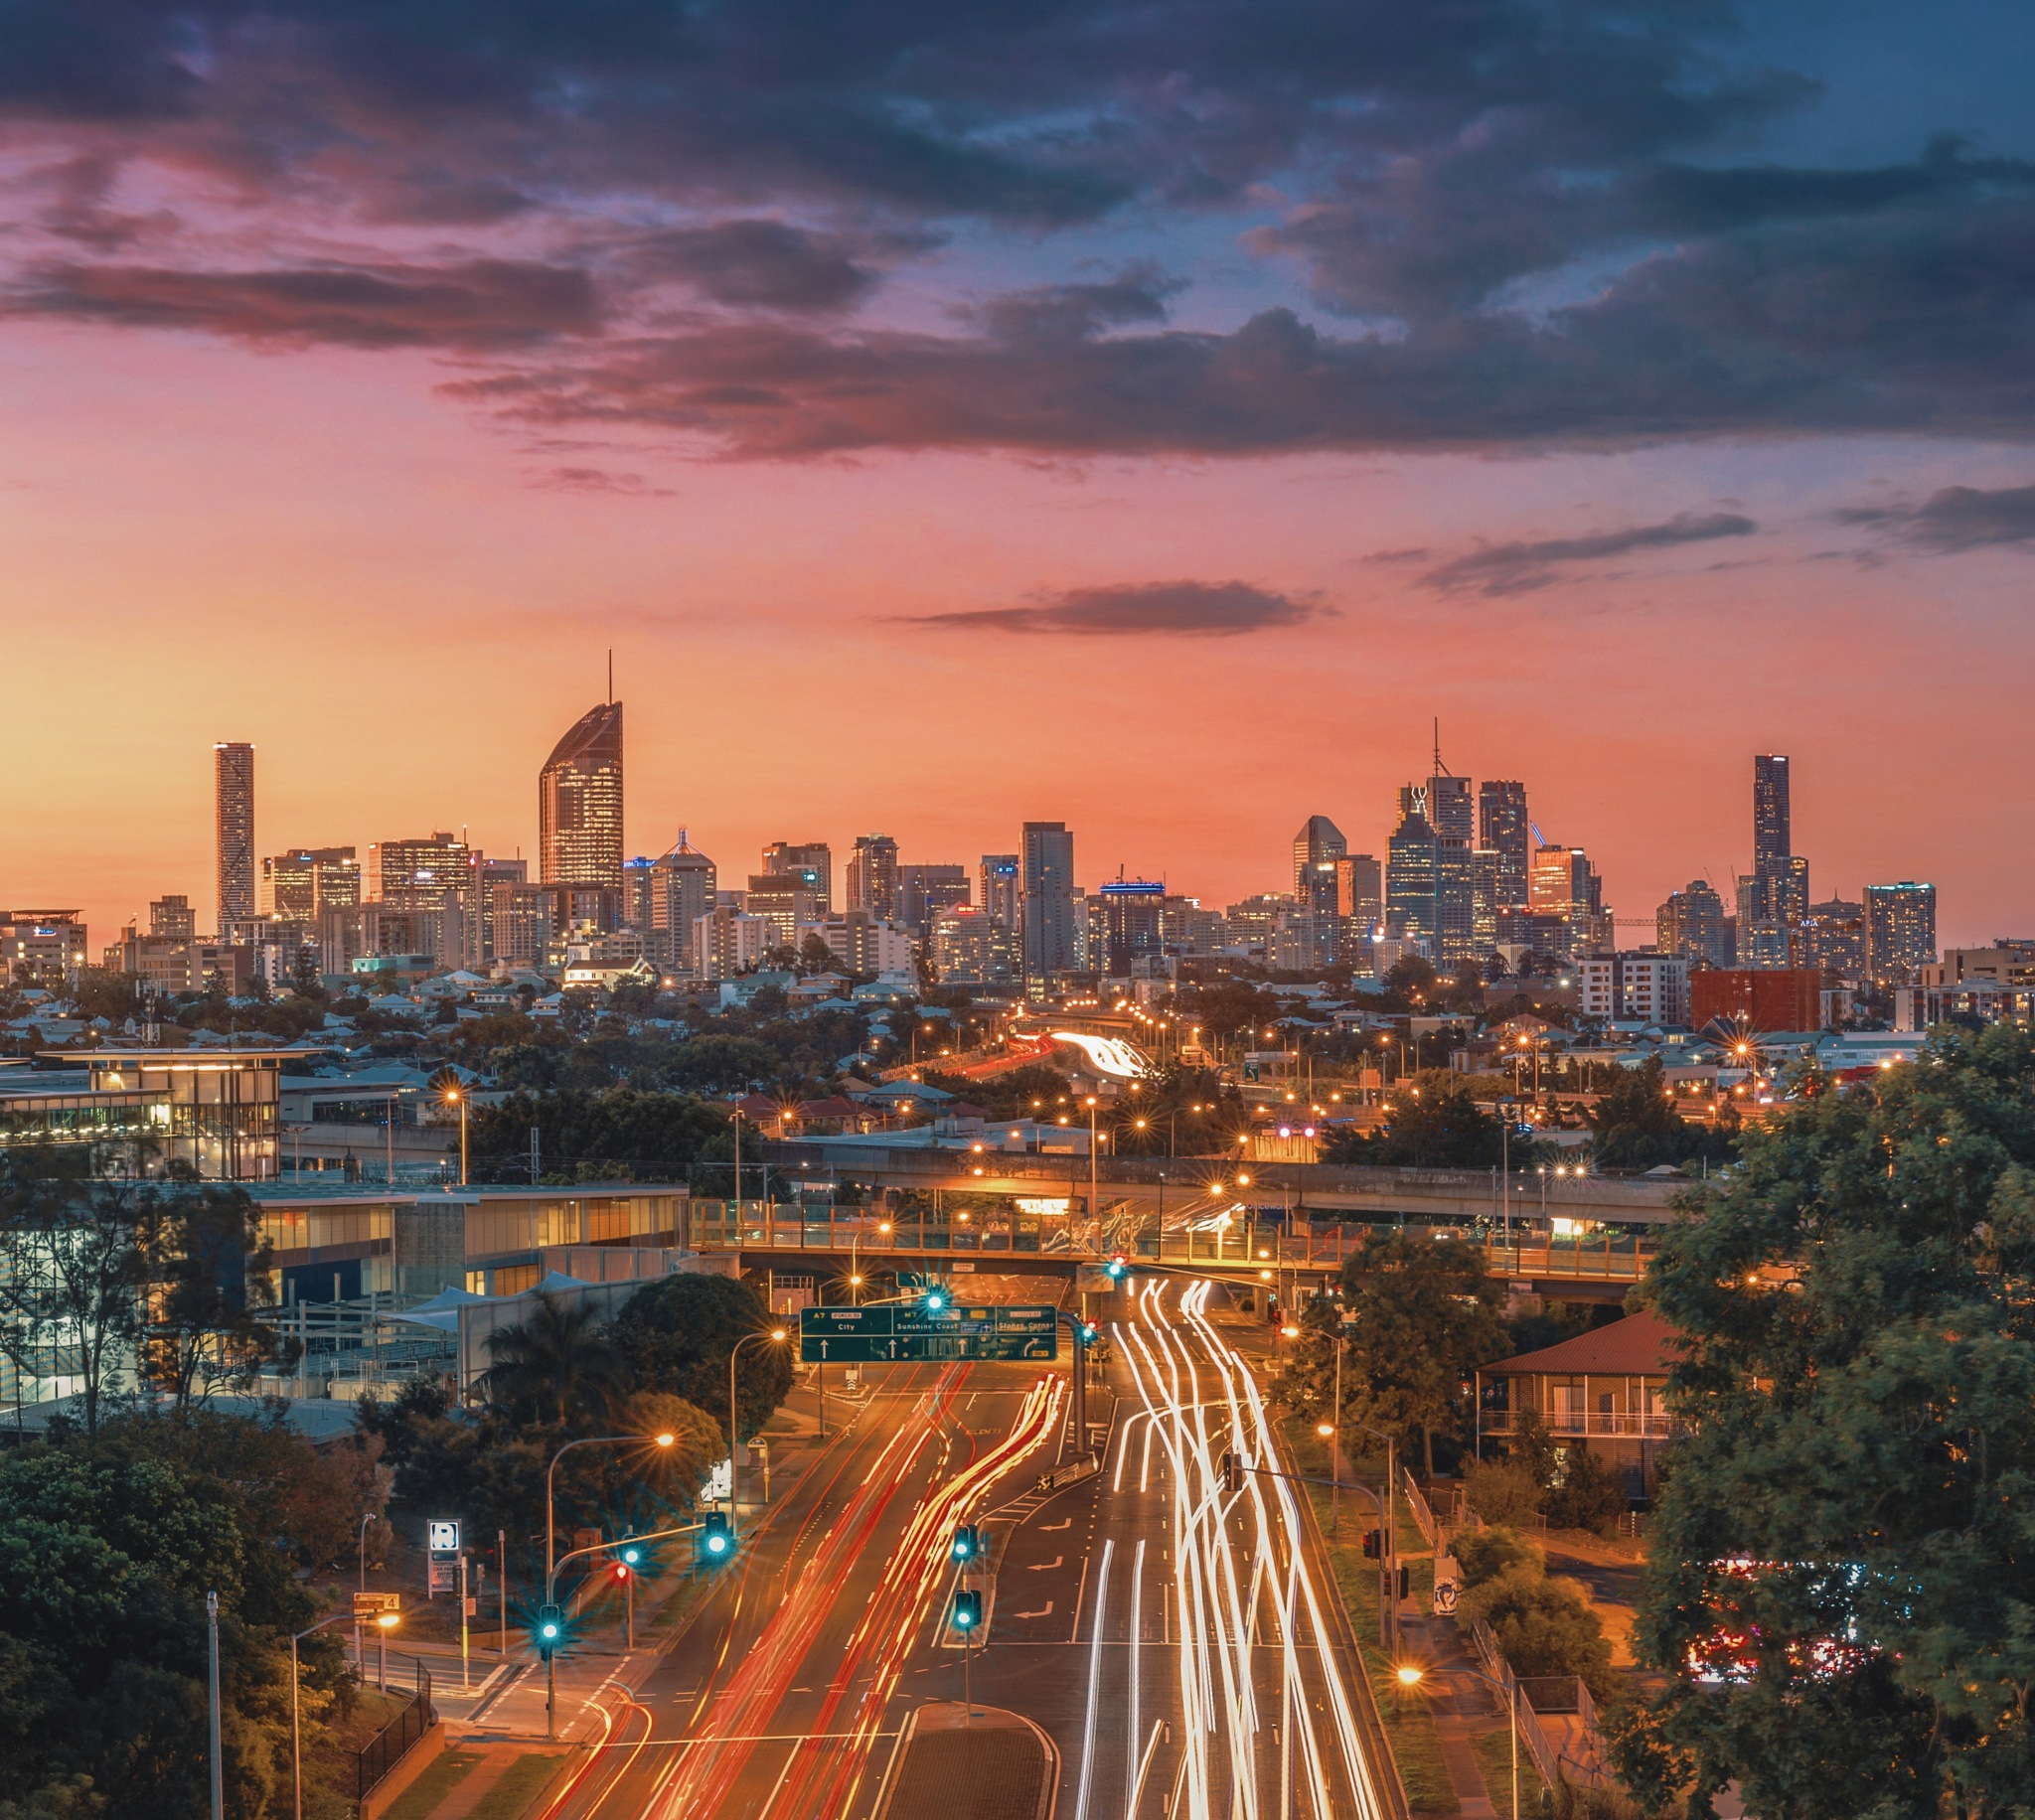 Long Exposure at Sunset in Brisbane by Aras Shots